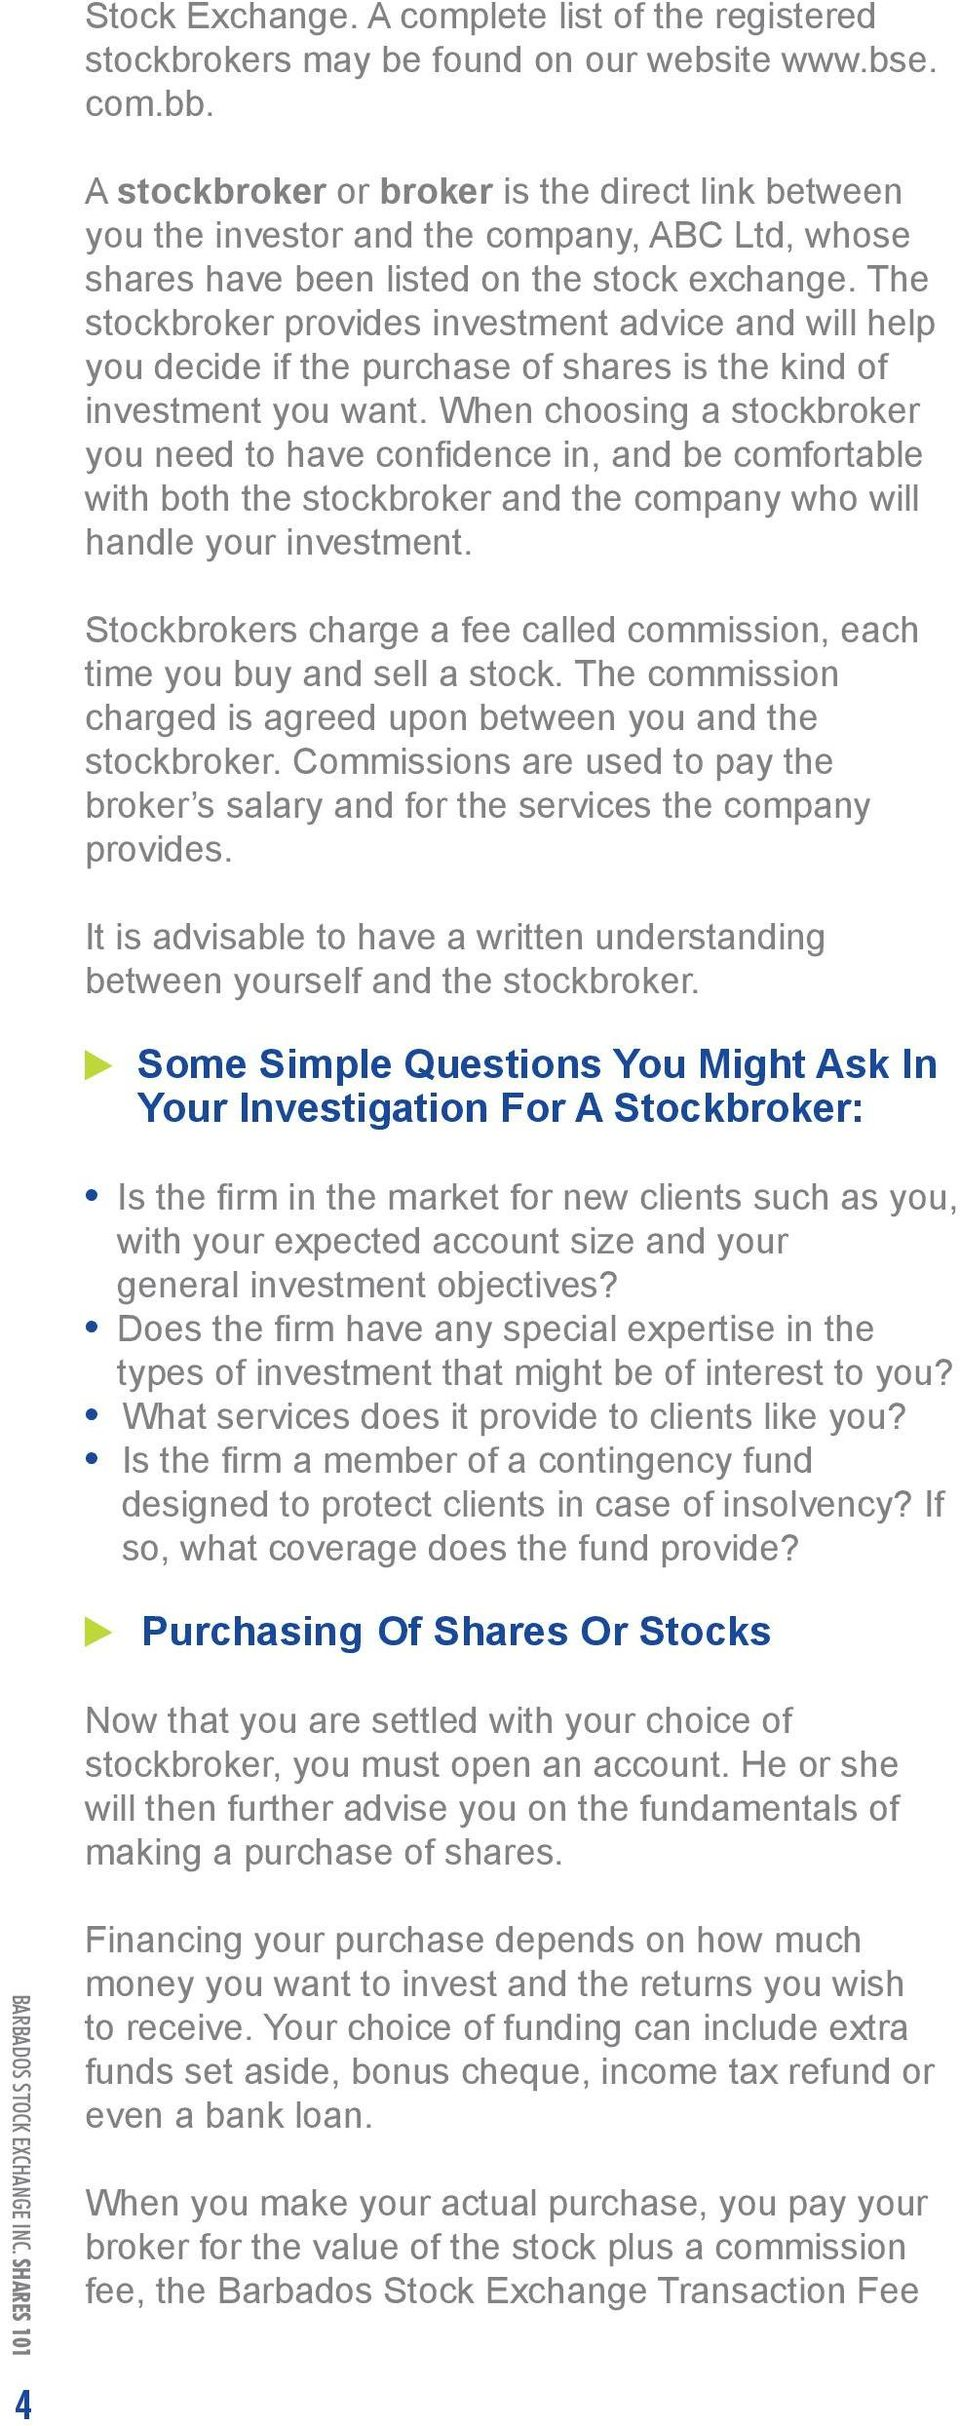 The stockbroker provides investment advice and will help you decide if the purchase of shares is the kind of investment you want.